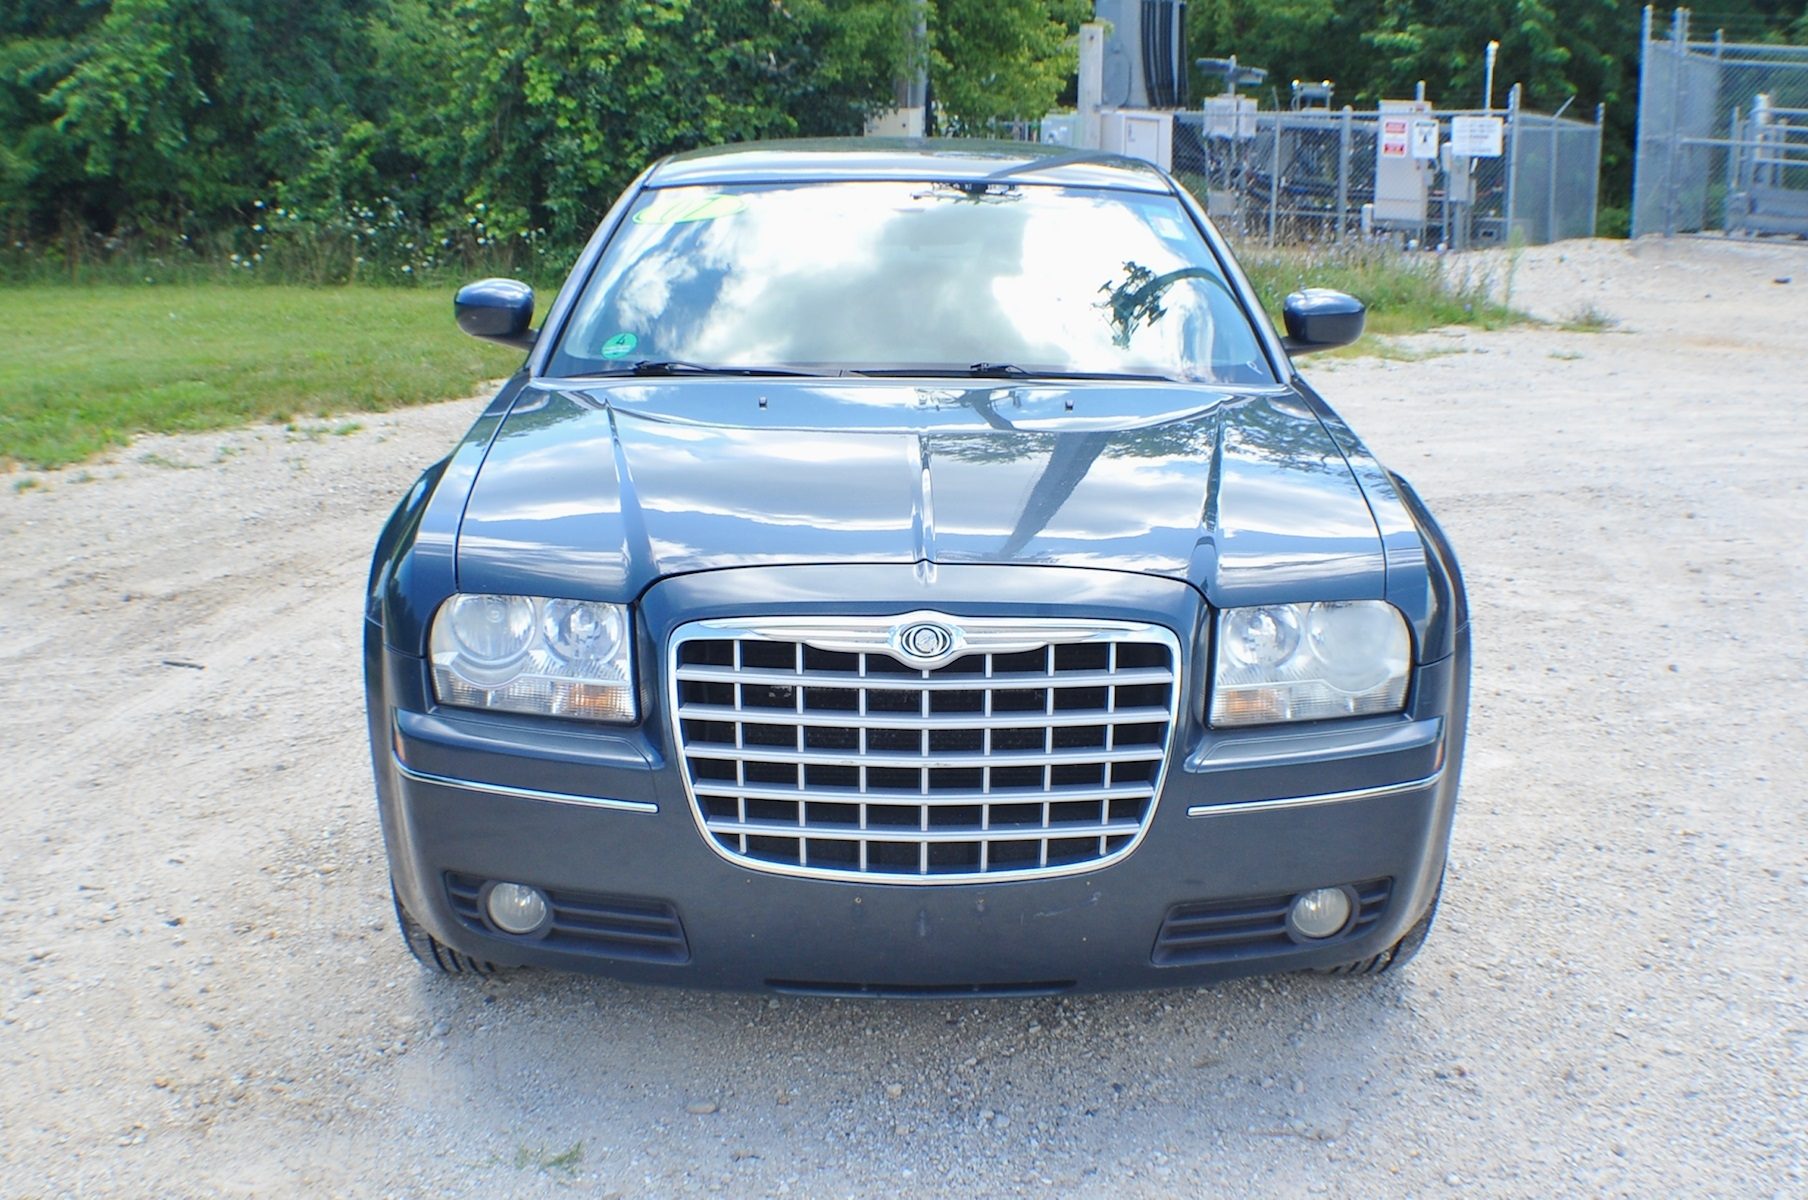 2007 Chrysler 300 Blue Touring Sedan Sale Gurnee Kenosha Mchenry Chicago Illinois